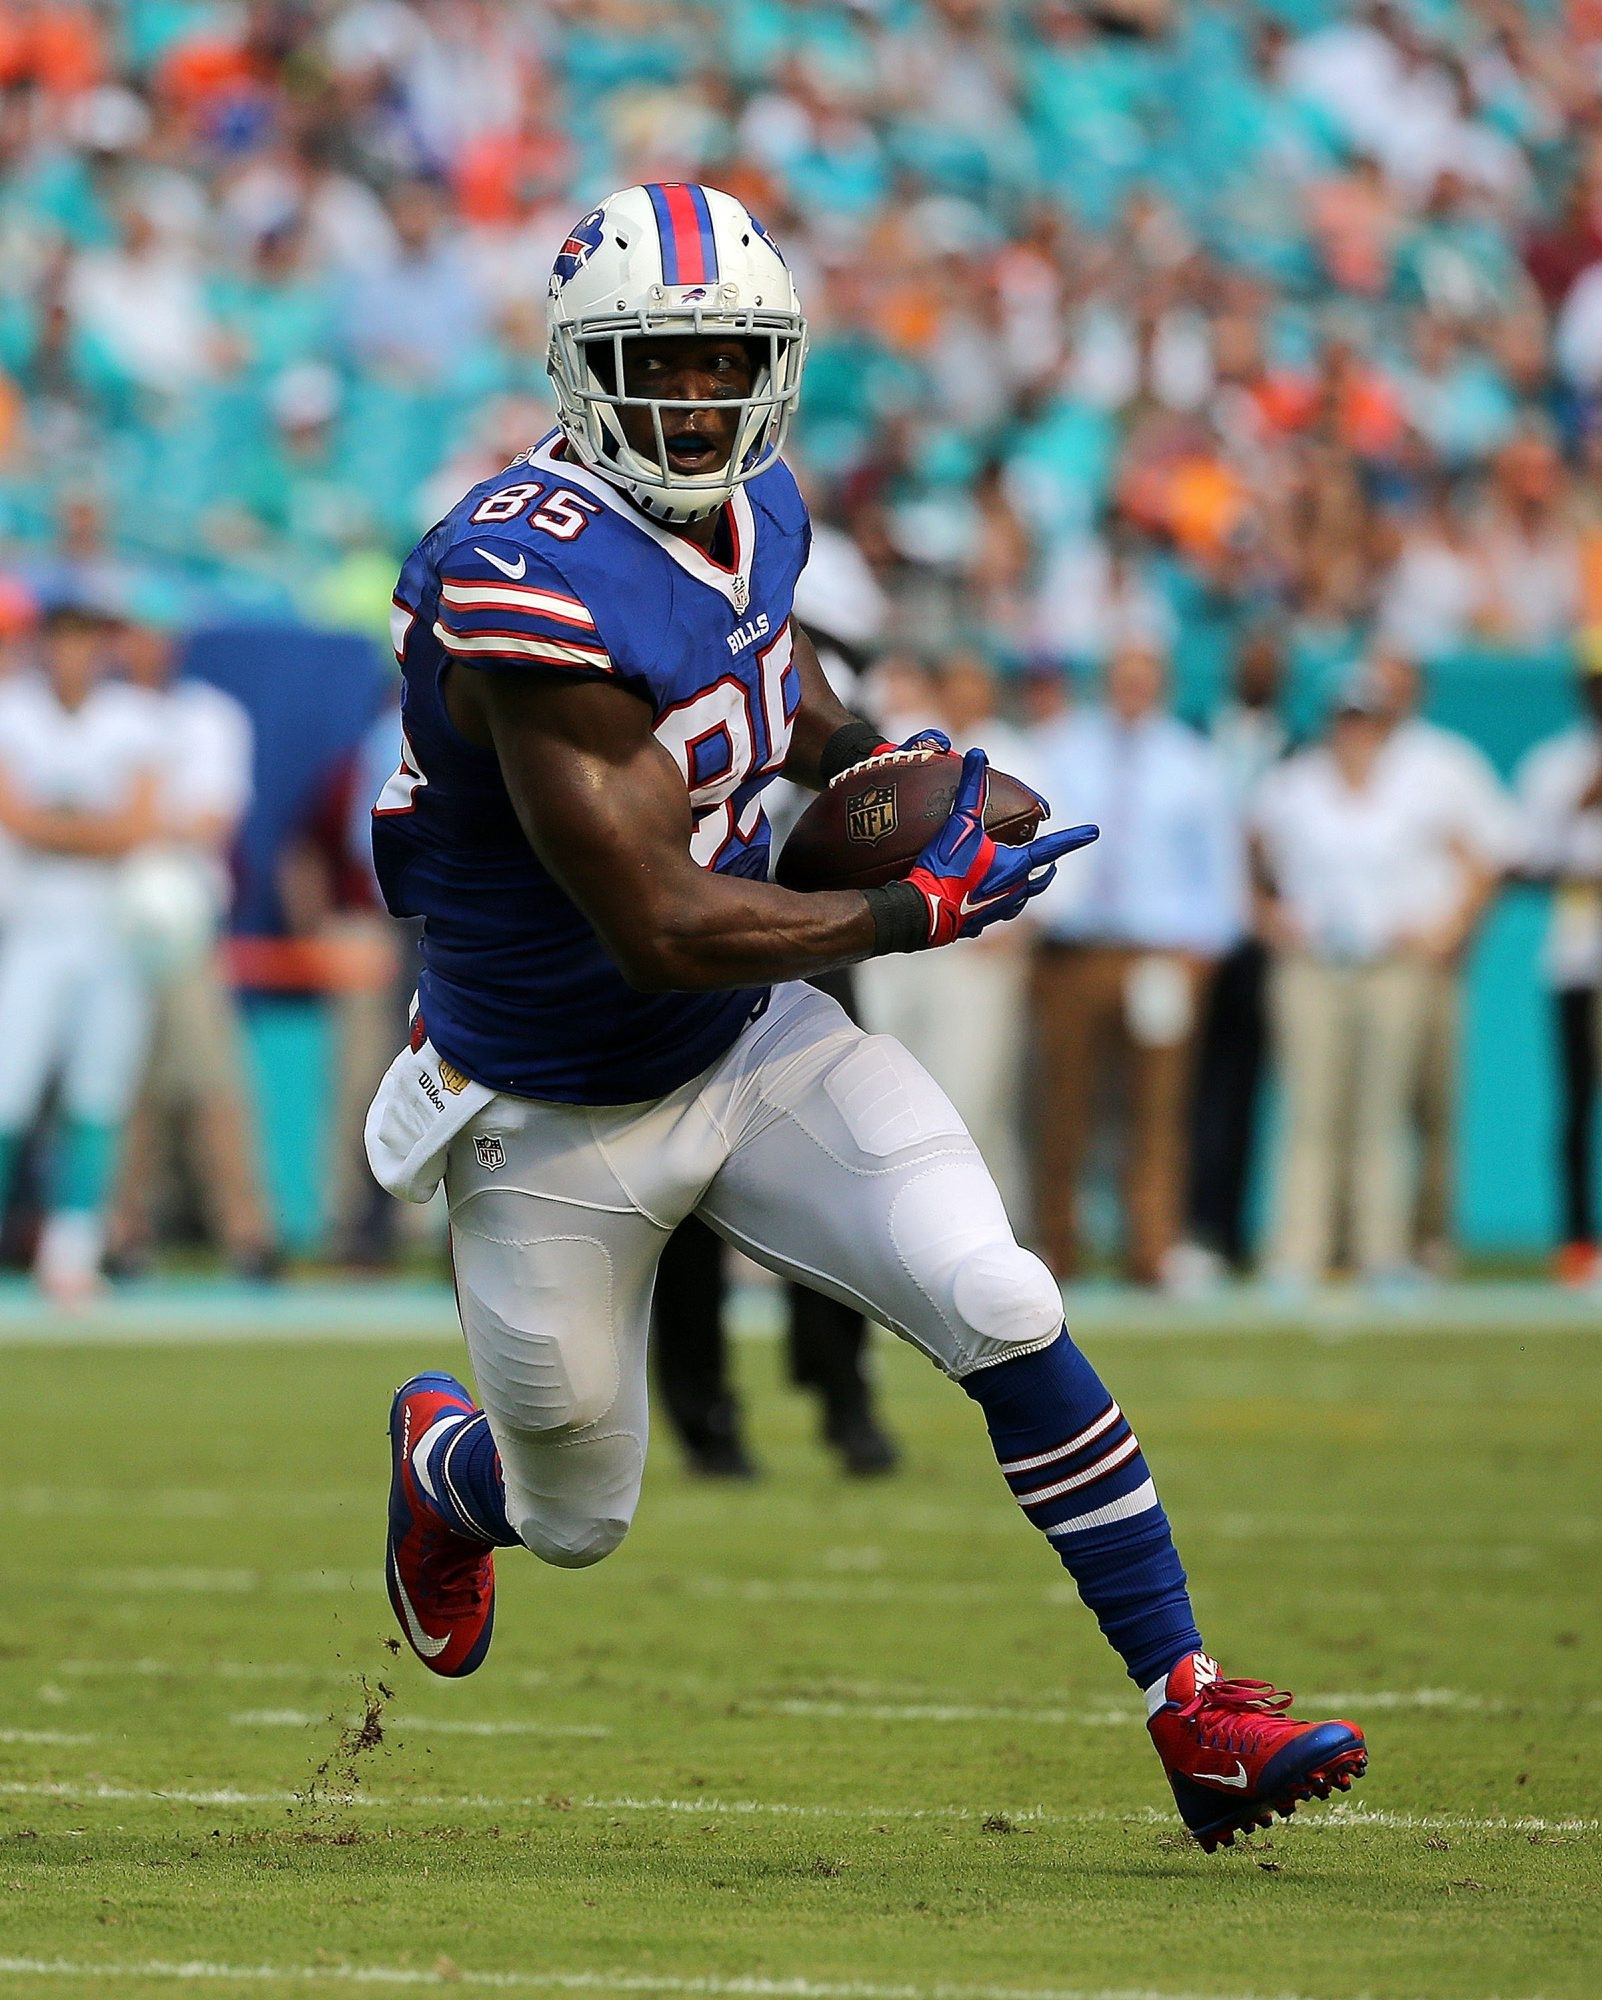 3 lie ncut Charles Clay #85 of the Buffalo Bills scores a touchdown during a game against the Miami Dolphins at Sun Life Stadium on September 27, 2015 in Miami Gardens, Florida.  (Photo by Mike Ehrmann/)